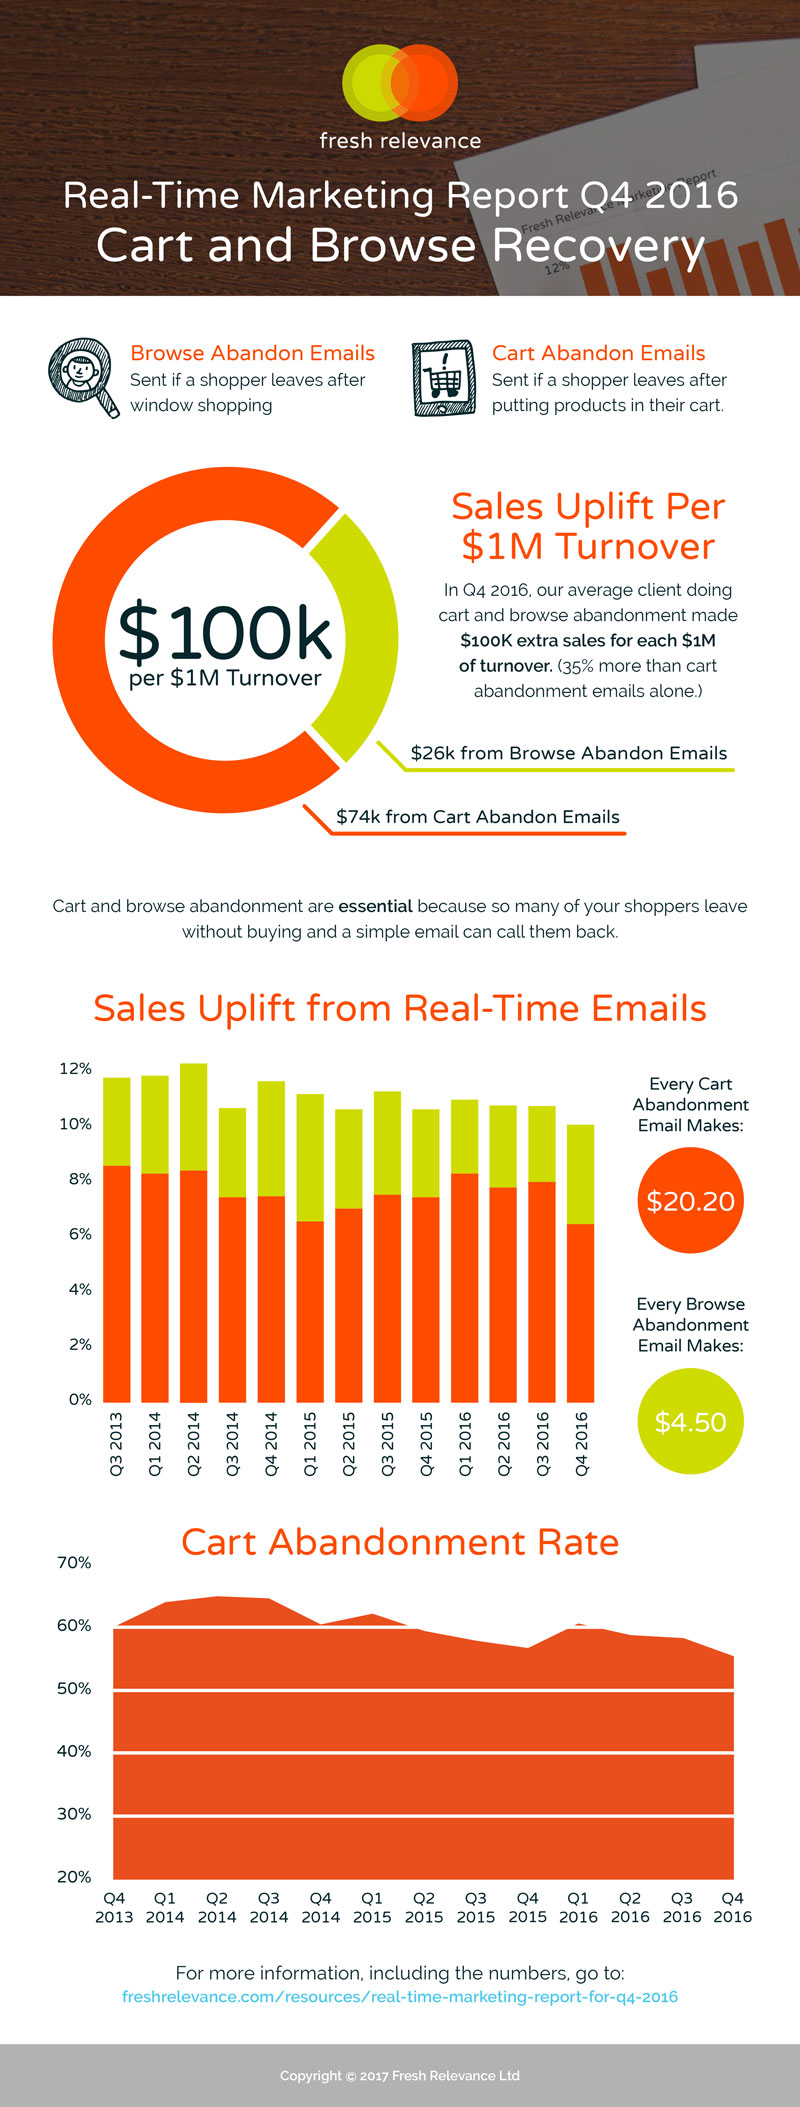 Real-Time Marketing Report for Q4 2016